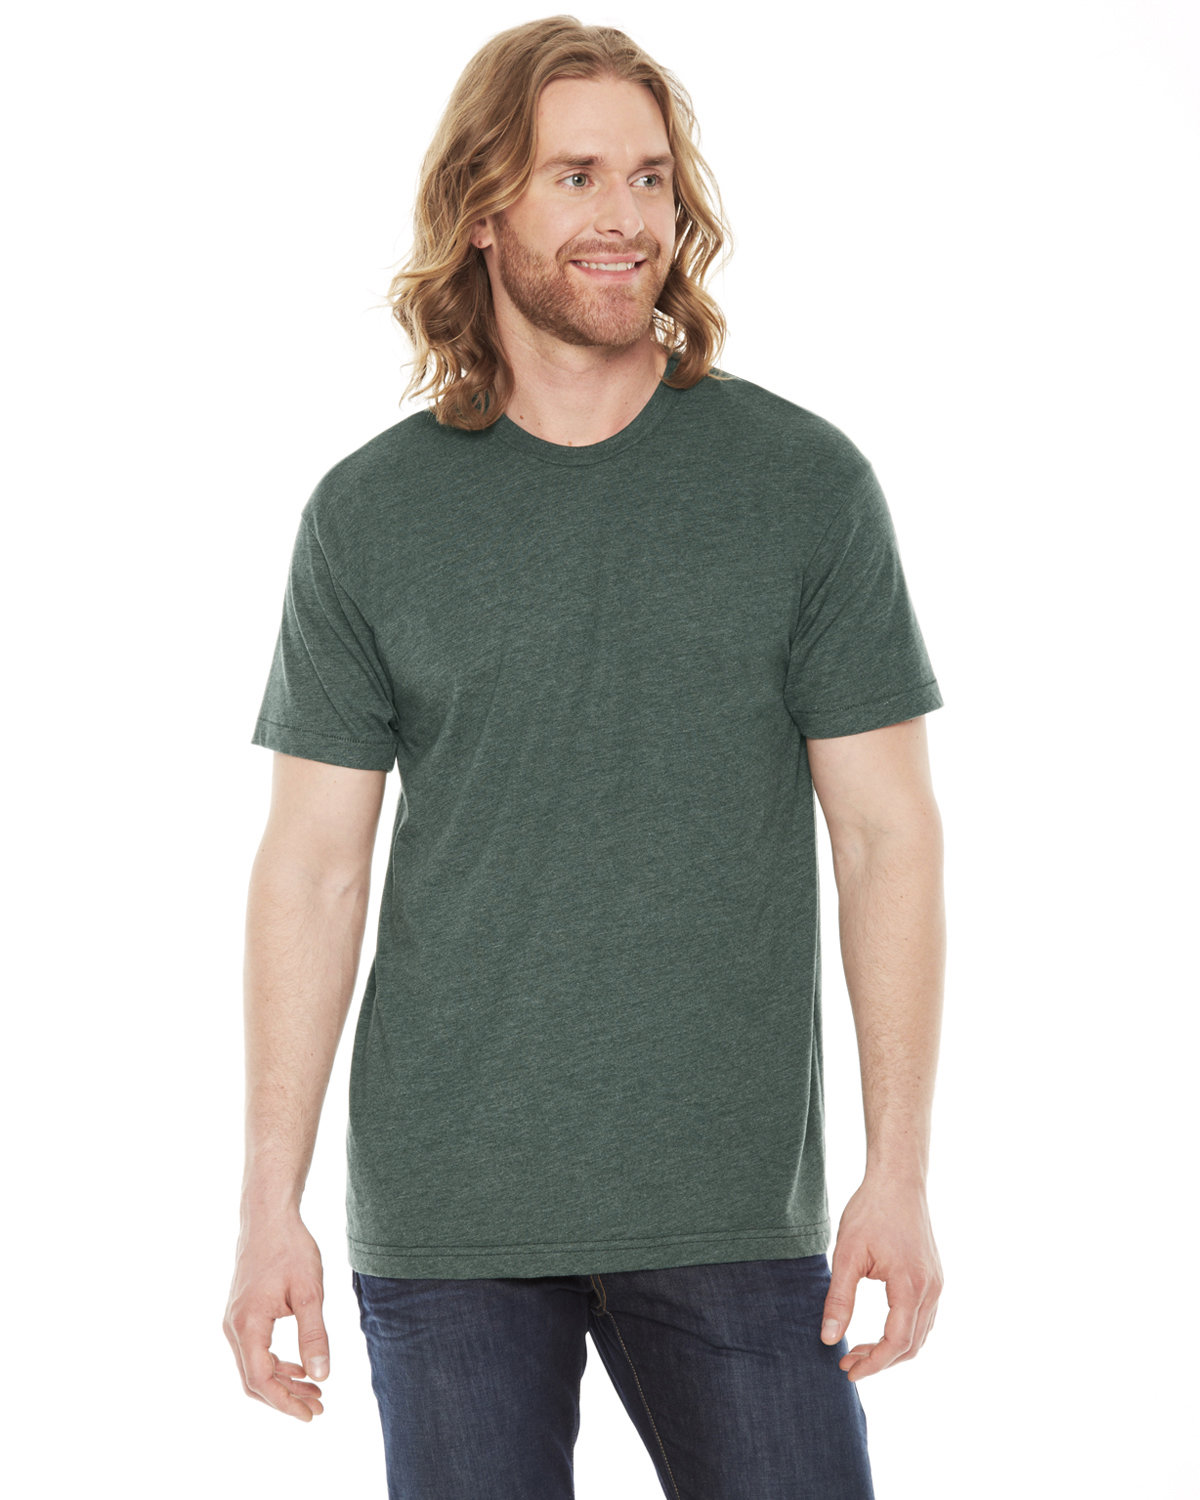 American Apparel Unisex Poly-Cotton USAMade Crewneck T-Shirt HEATHER FOREST